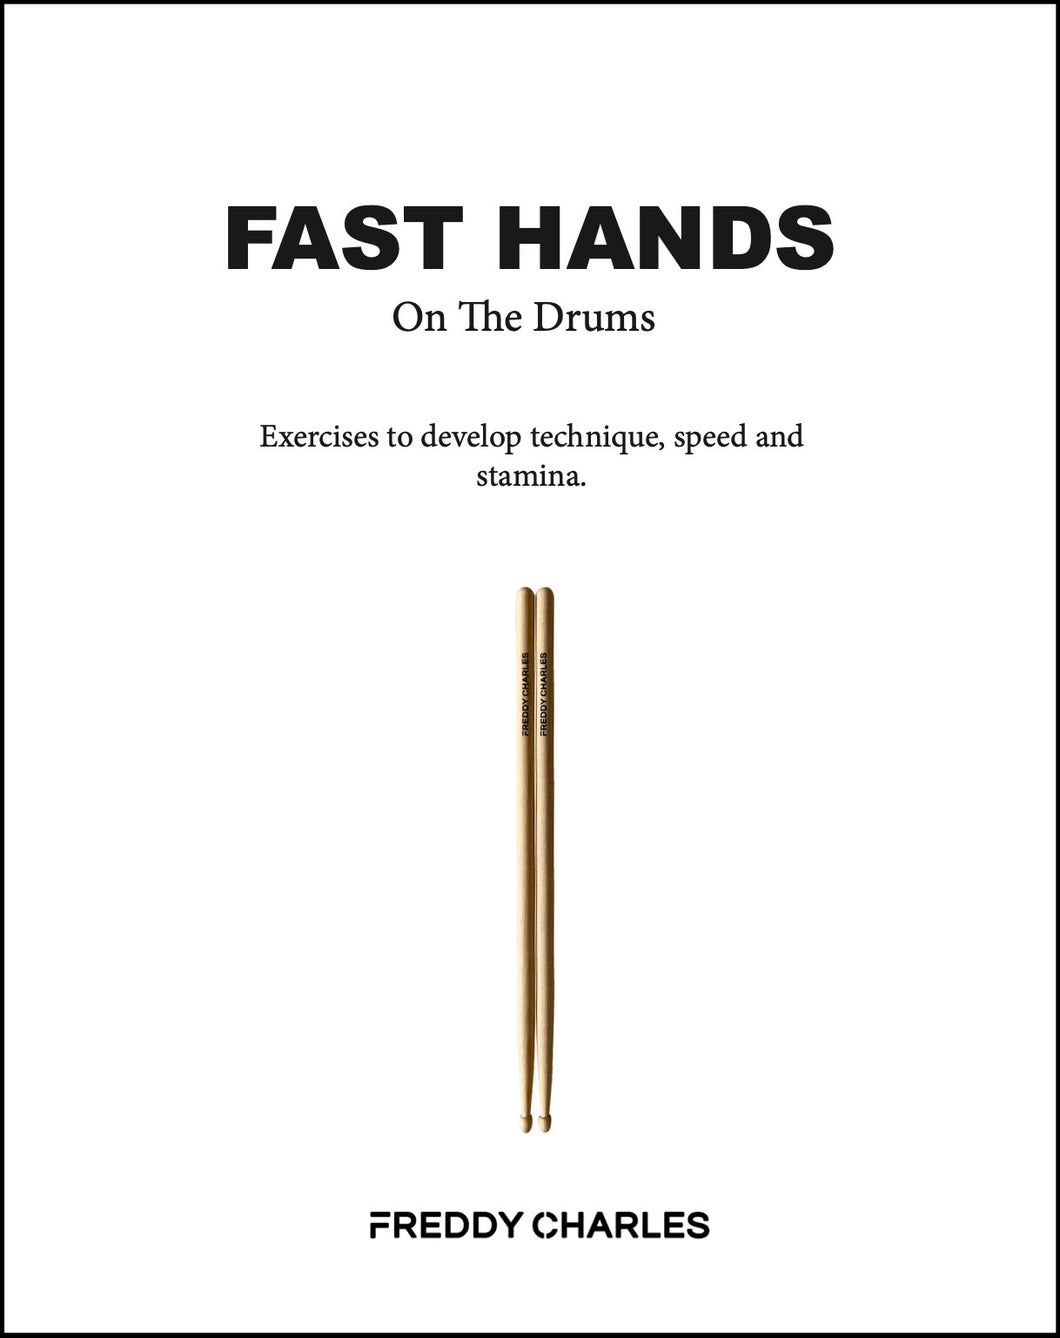 https://freddycharlesmusic.com/products/fast-hands-on-the-drums-ebook